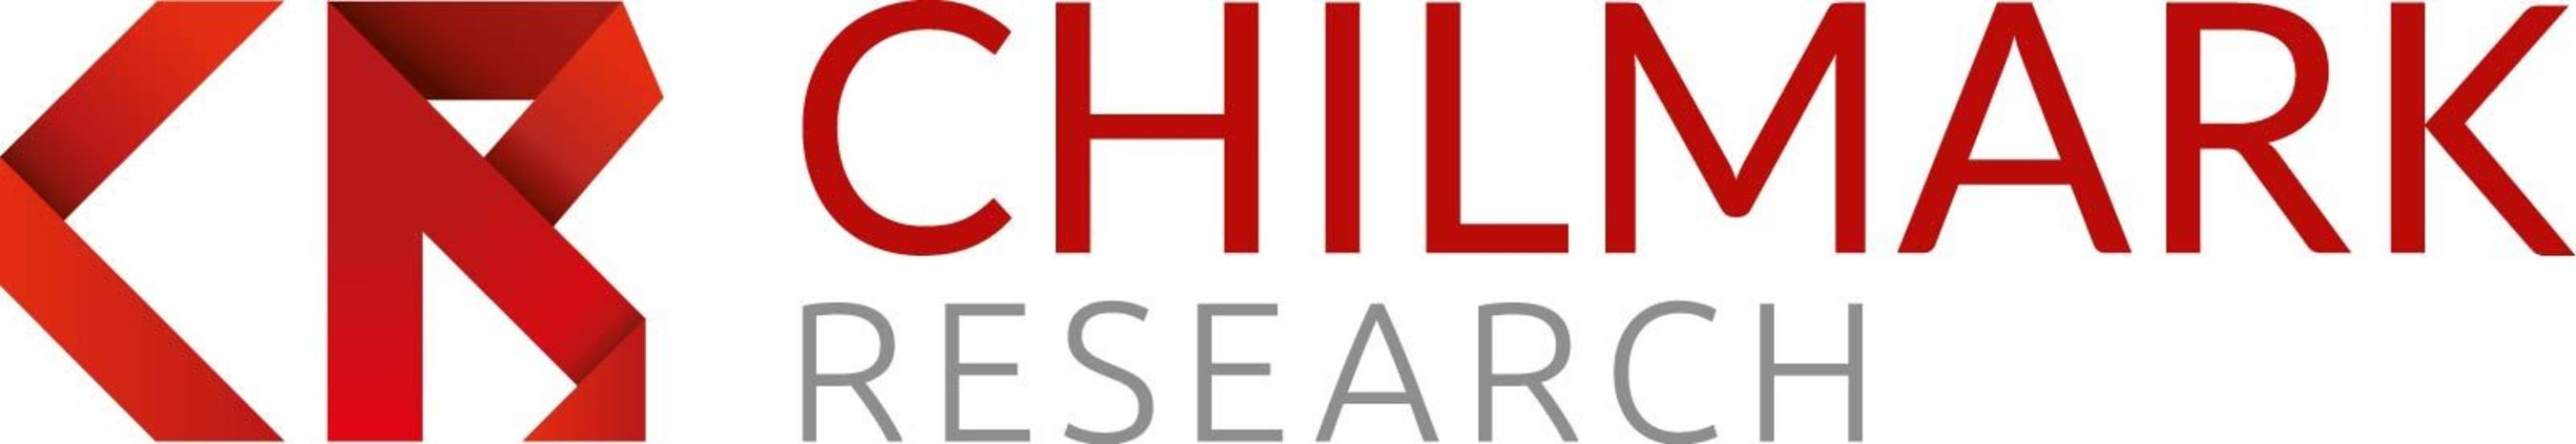 Chilmark Research is the only industry analyst firm focusing solely on the most transformational trends in healthcare IT. We combine proven research methodologies with intelligence and insight to provide cogent analyses of the emerging technologies that have the greatest potential to improve healthcare. We do not shy away from making tough calls, and are respected in the industry for our direct and thoughtful commentary. For more information visit: http://www.chilmarkresearch.com.